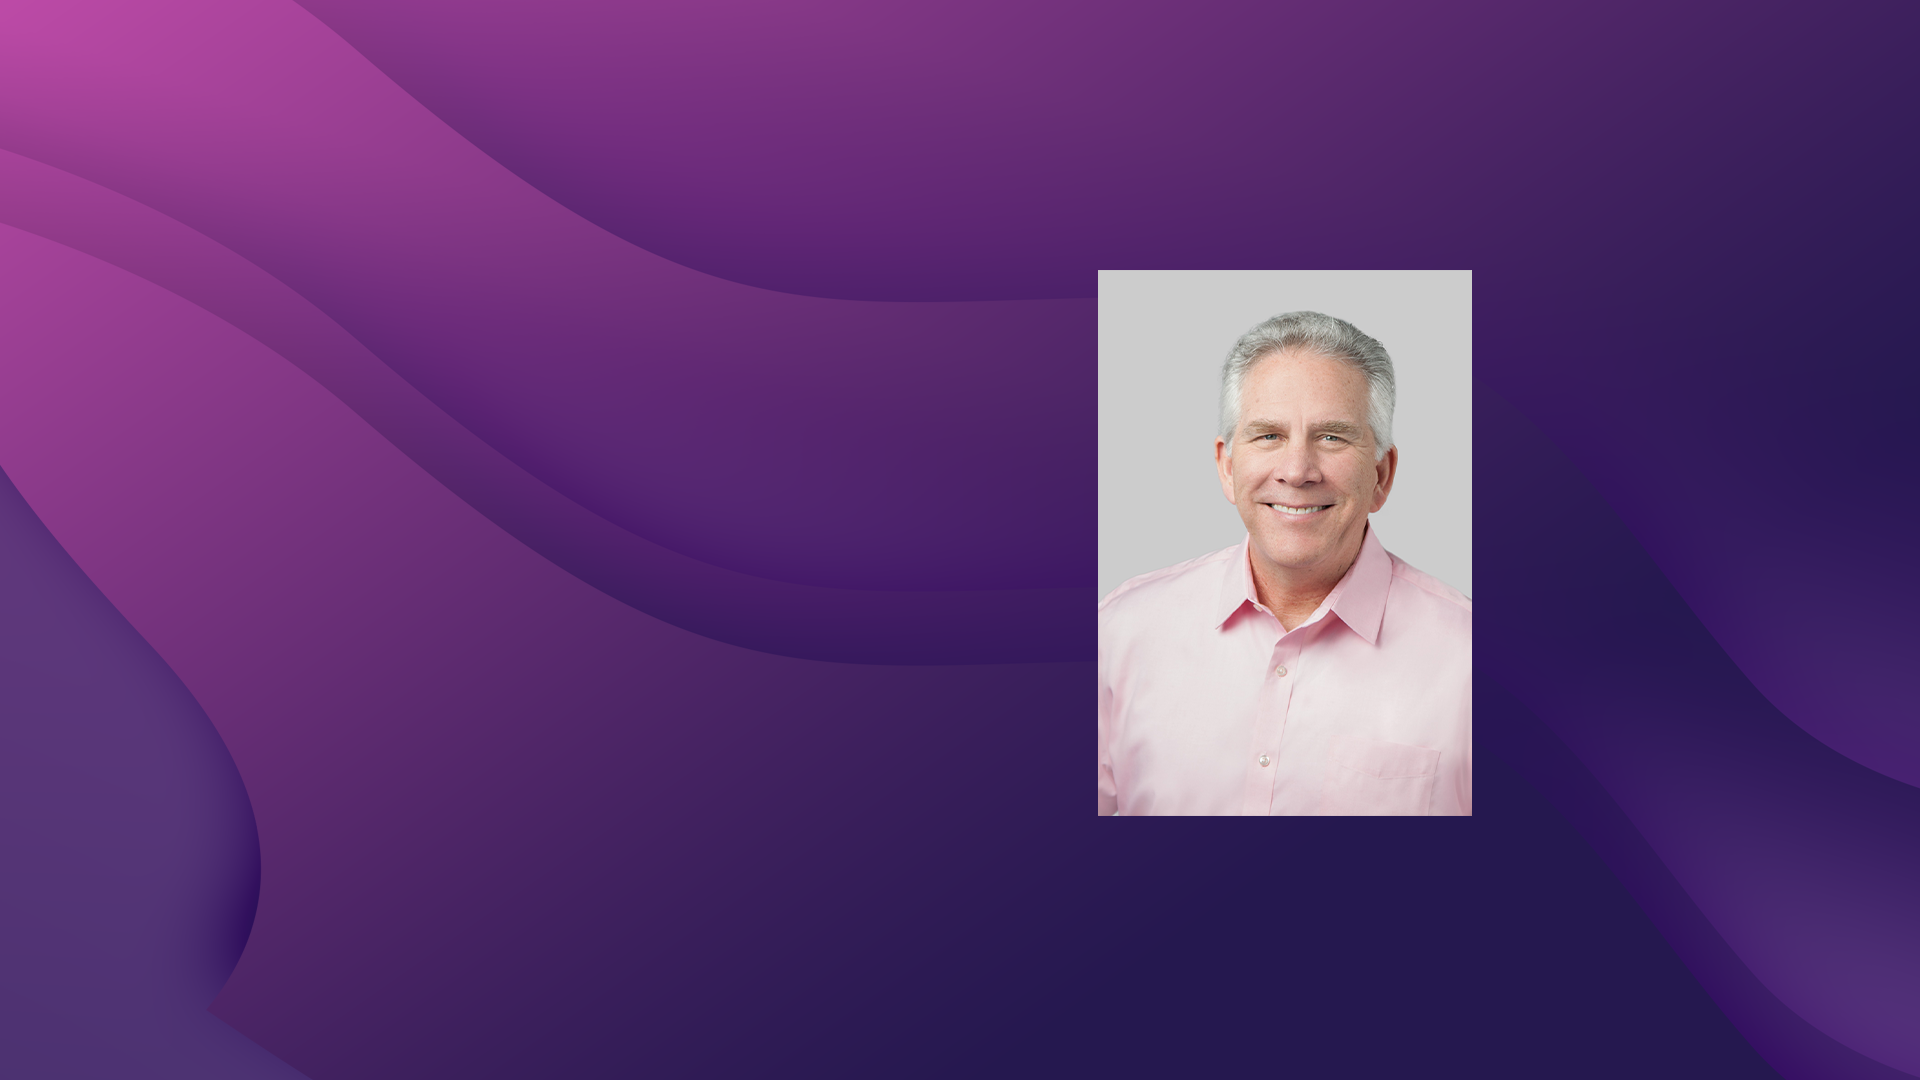 1227: Mark McClain, CEO and co-founder of SailPoint Technologies